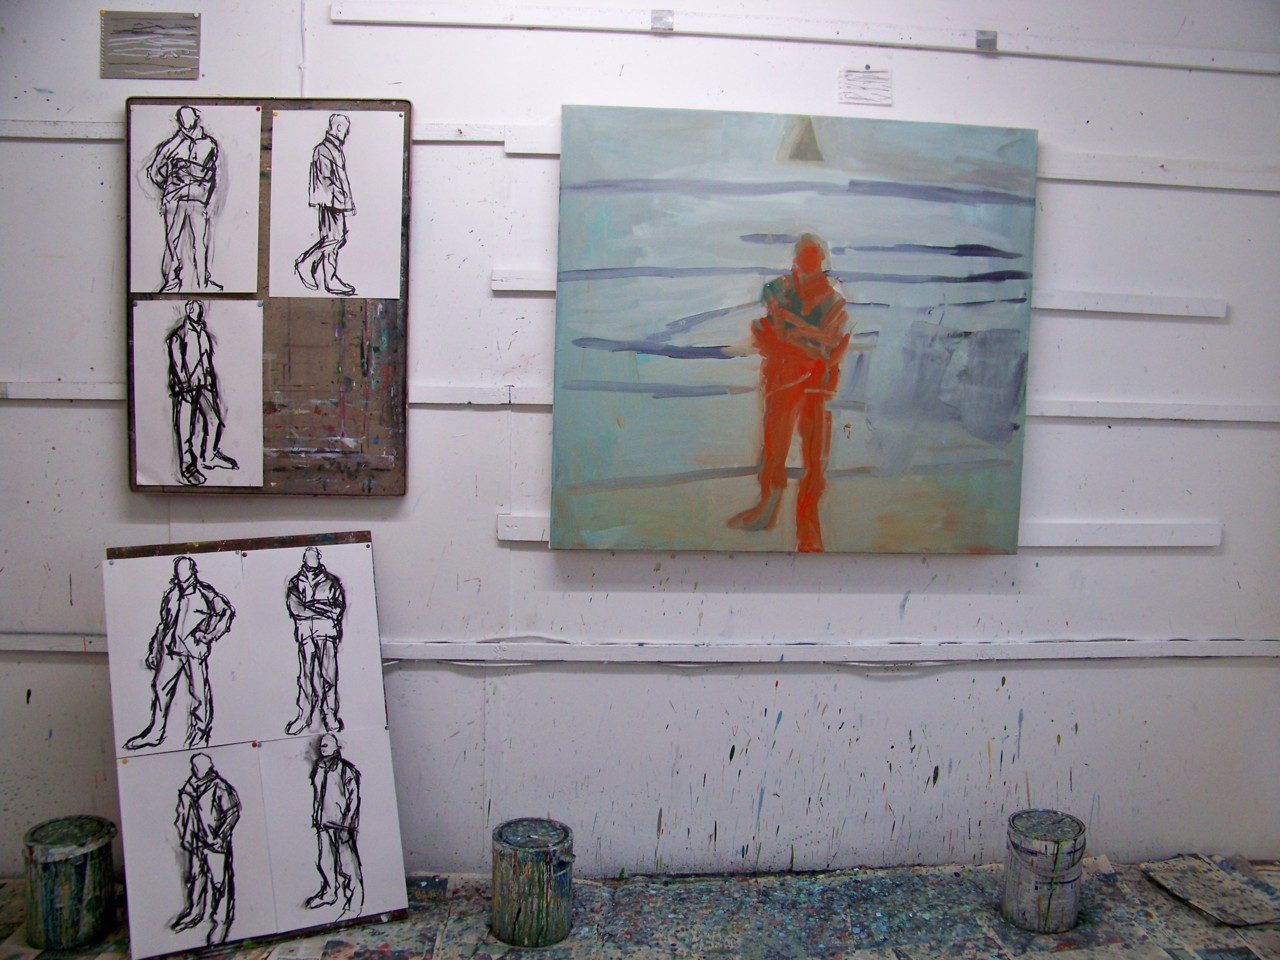 12th January 2012. Starting another new painting…with no idea where it's going to lead or what it is going to look like. I will photograph it as it progresses.